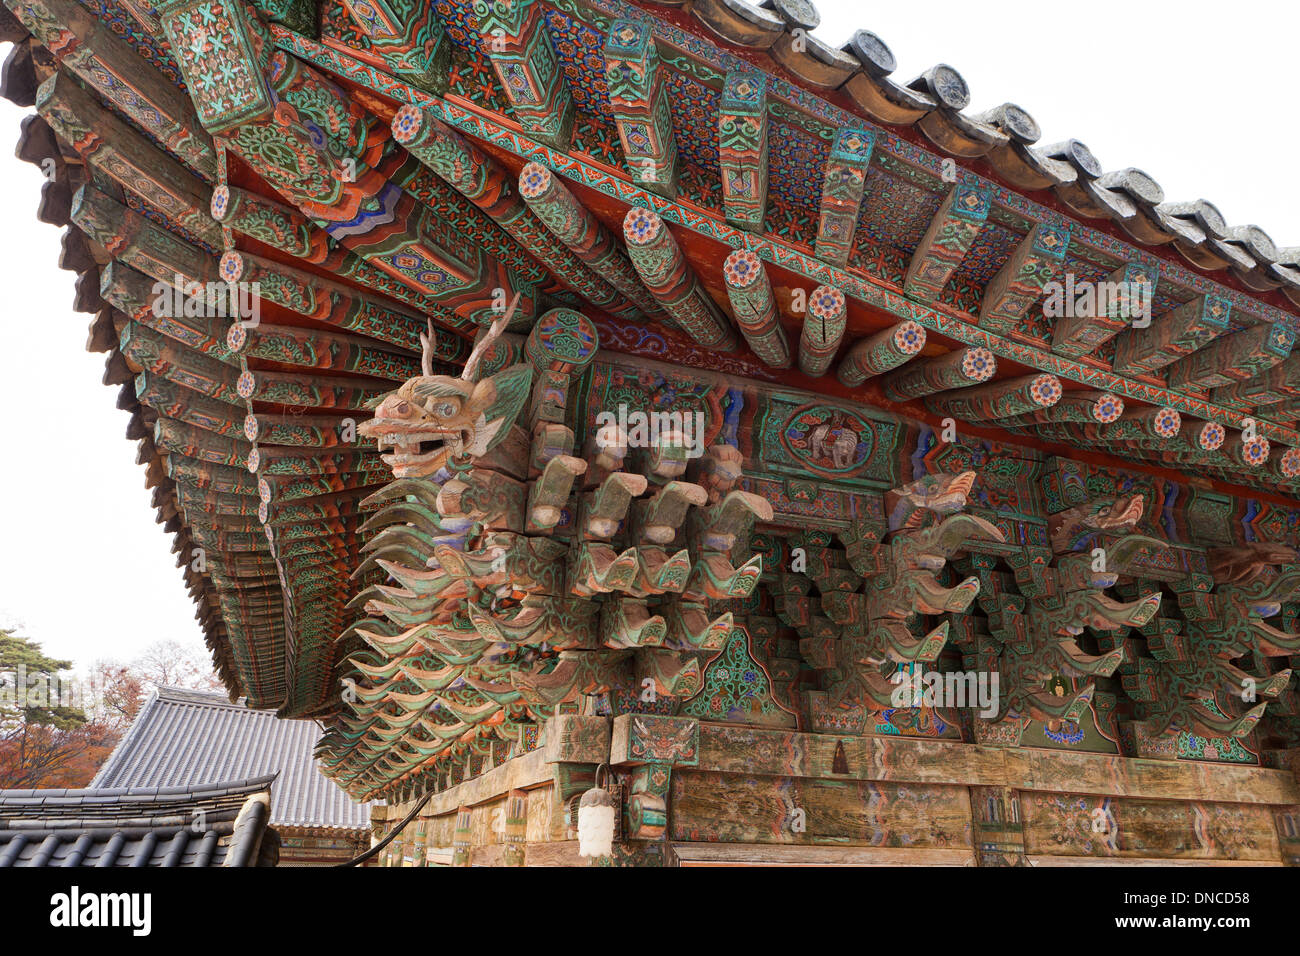 Traditional wood architecture in Hanok style - Gyeongju, South ...